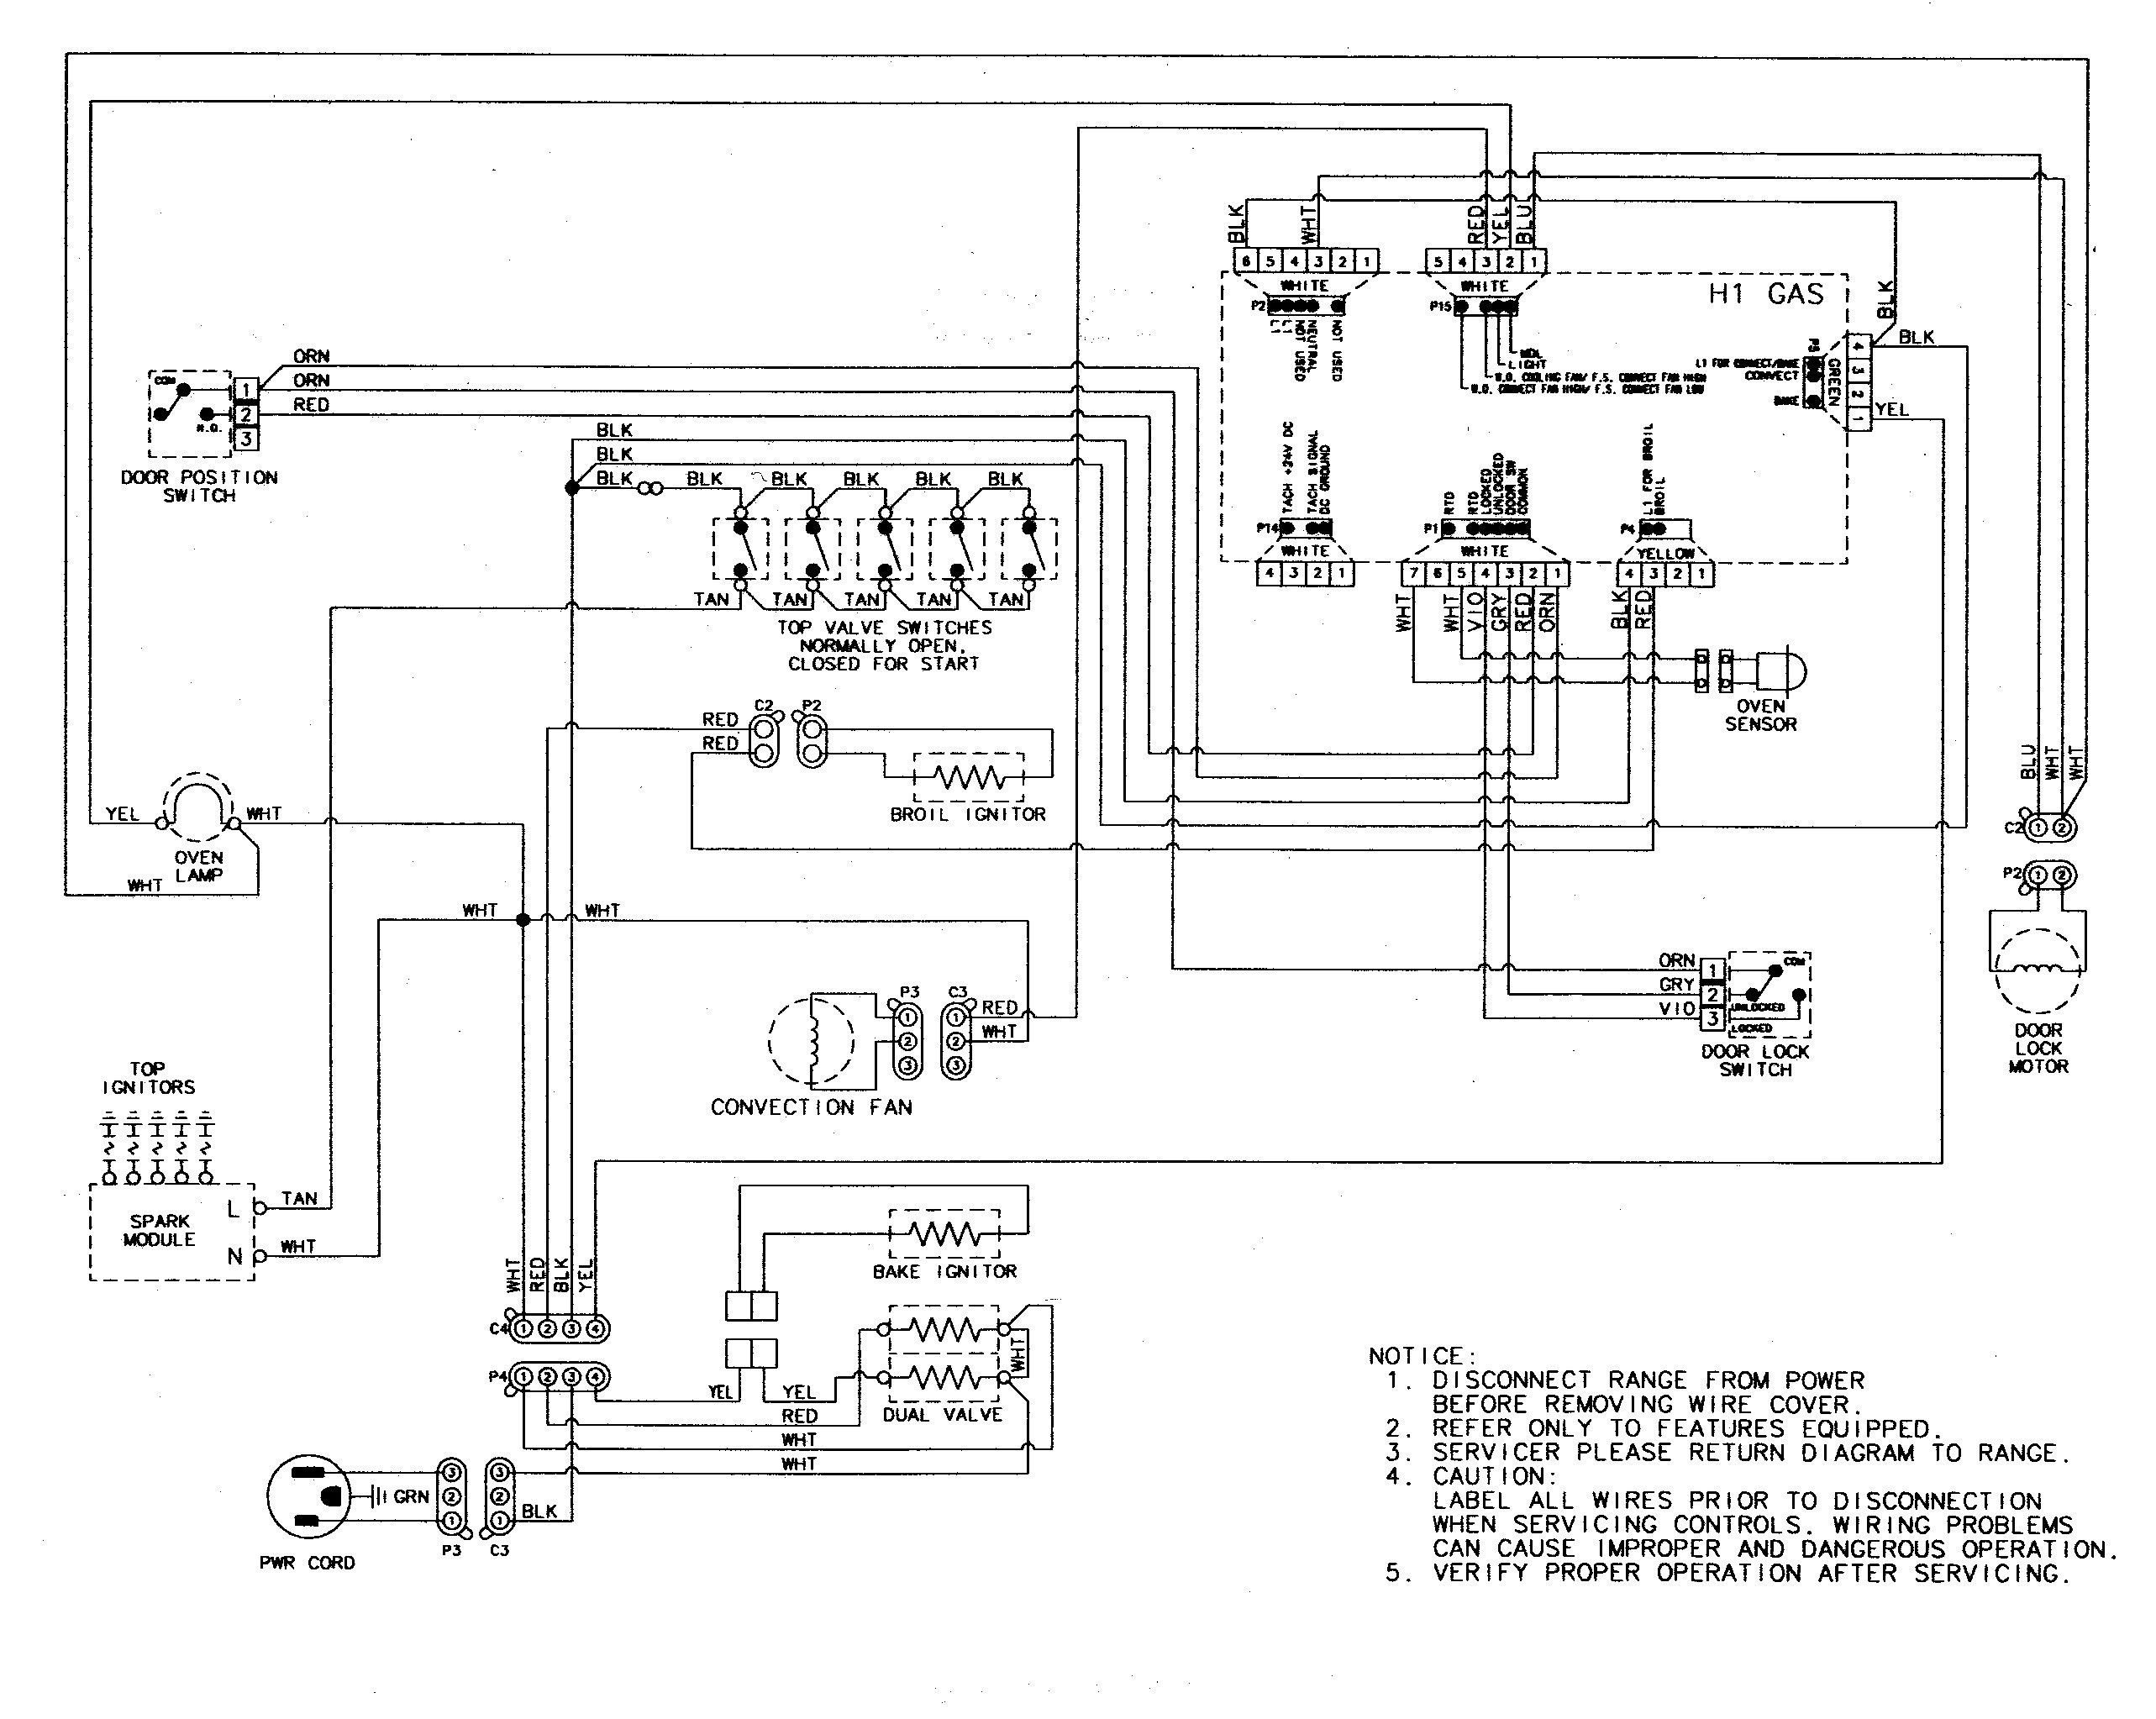 diagram dryer wiring whirlpool le6800xp explained wiring diagrams rh dmdelectro co Whirlpool Dryer Repair Manual Whirlpool